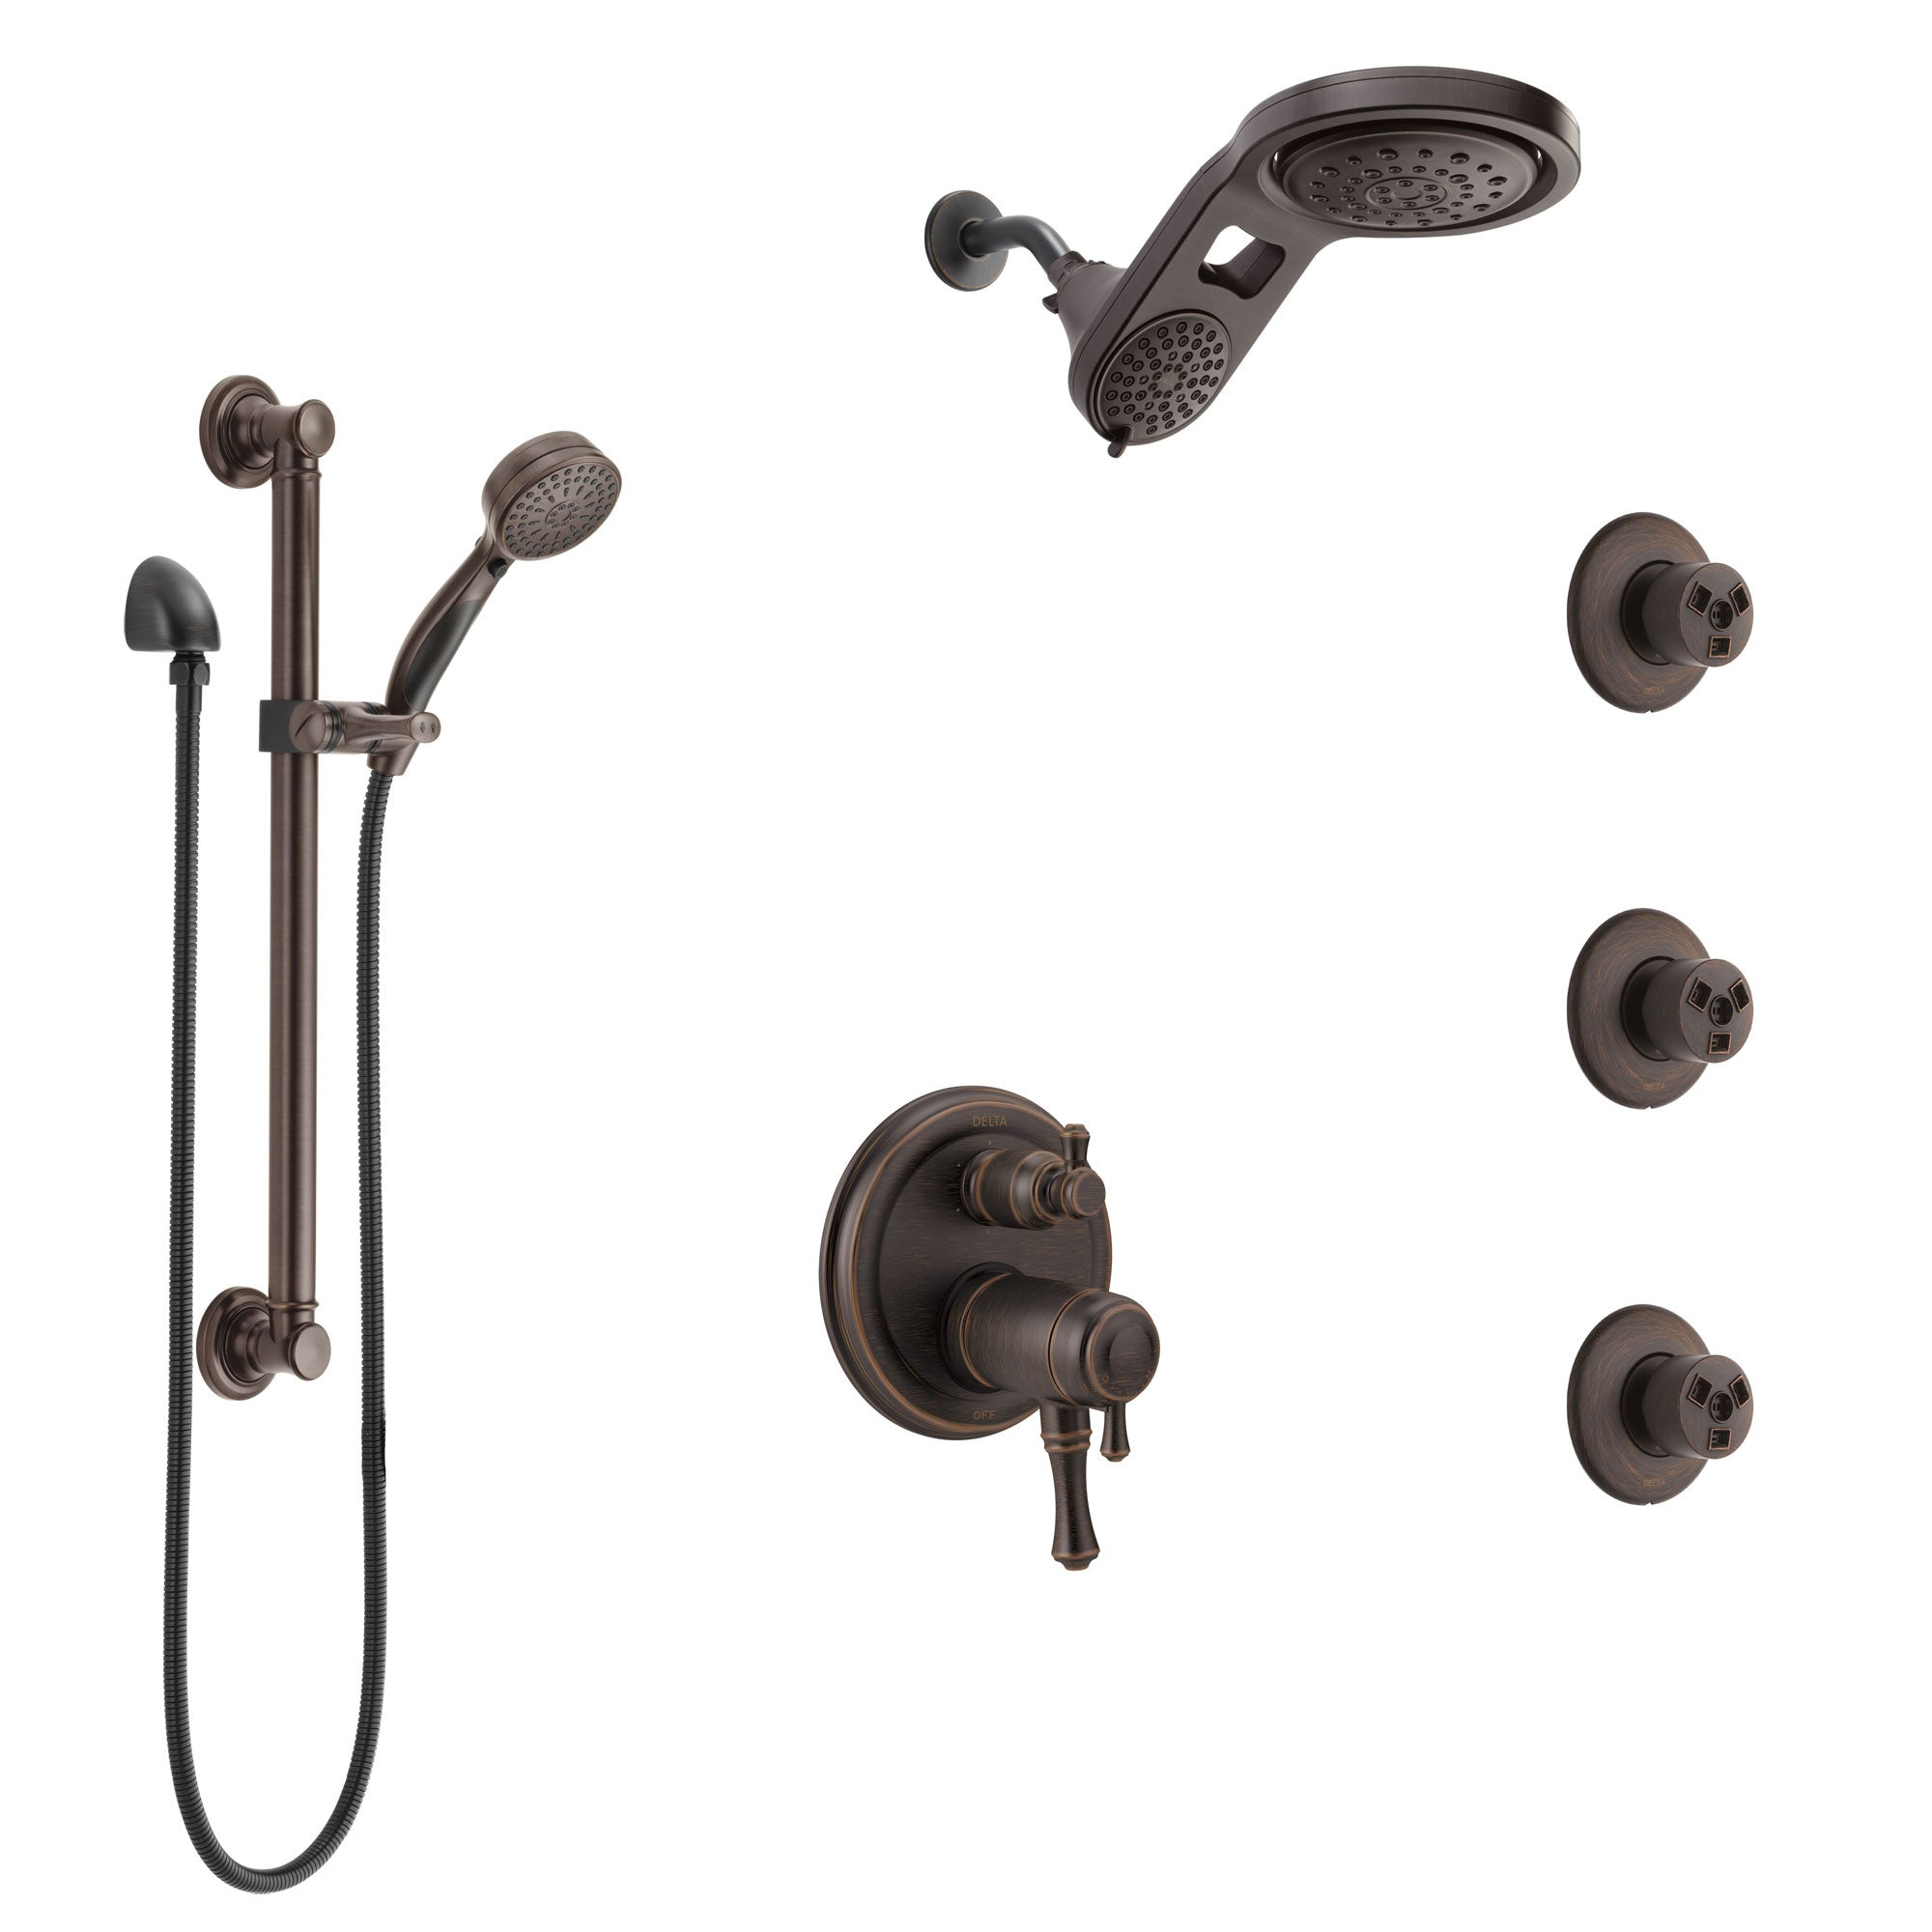 Delta Cassidy Venetian Bronze Dual Thermostatic Control Shower System, Dual Showerhead, 3 Body Jets, Grab Bar Hand Spray SS27T997RB4